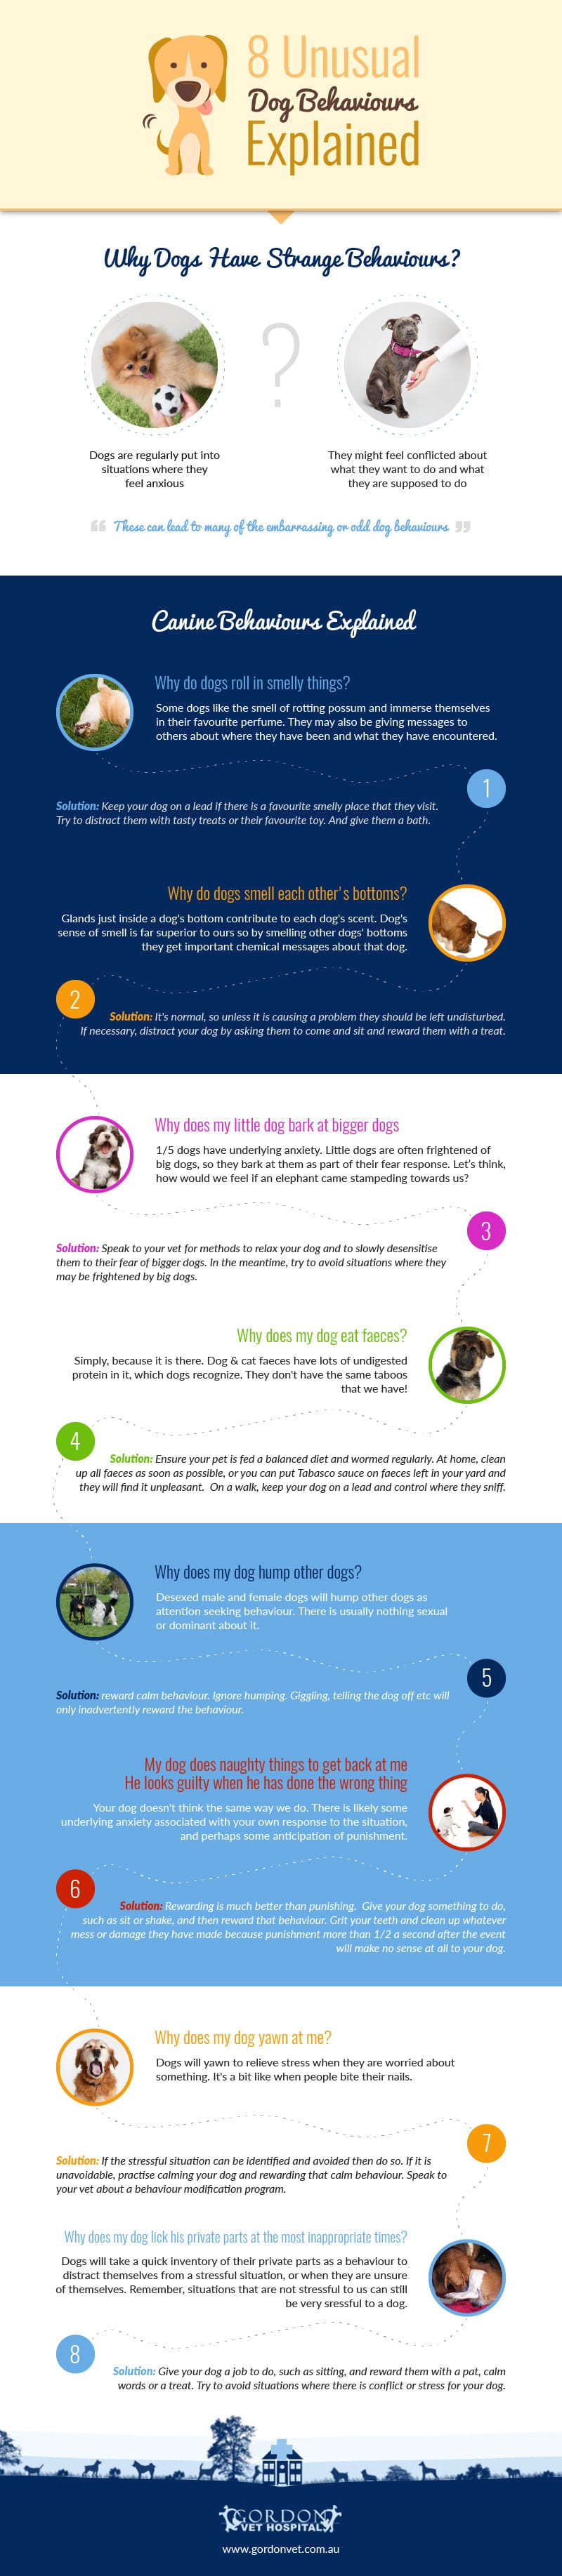 8 Unusual Dog Behaviours Explained